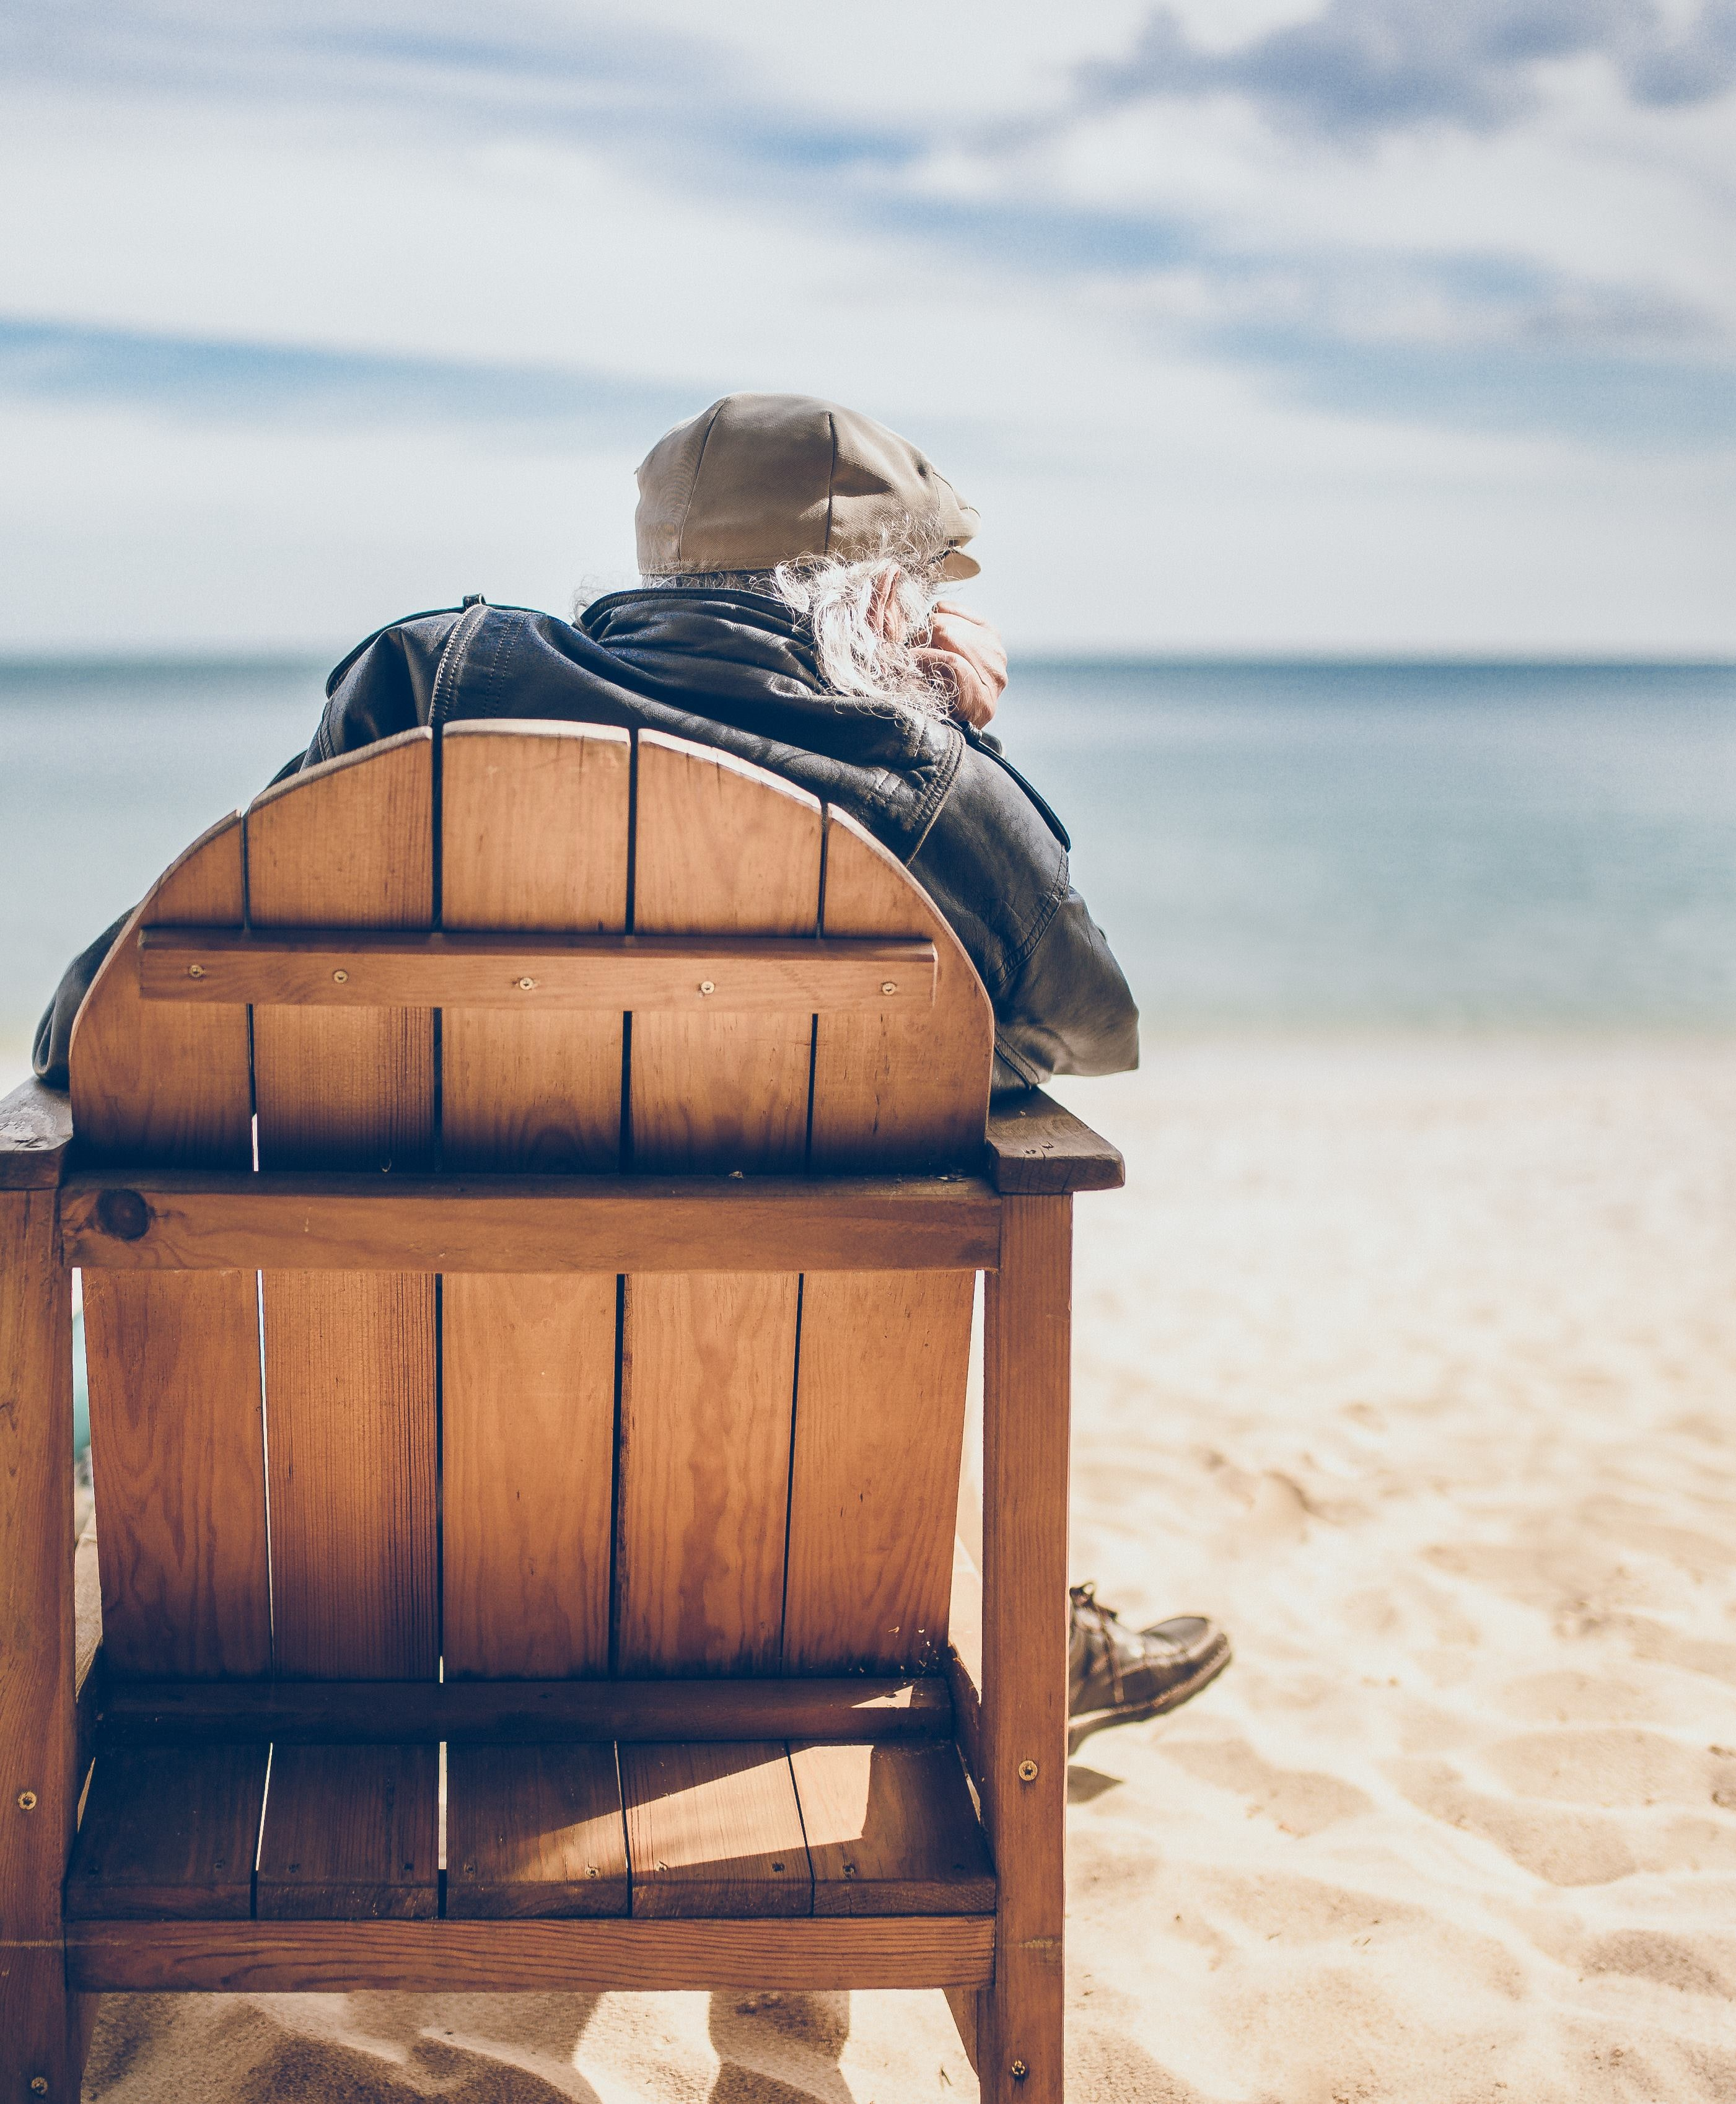 person sitting on brown wooden chair in seashore